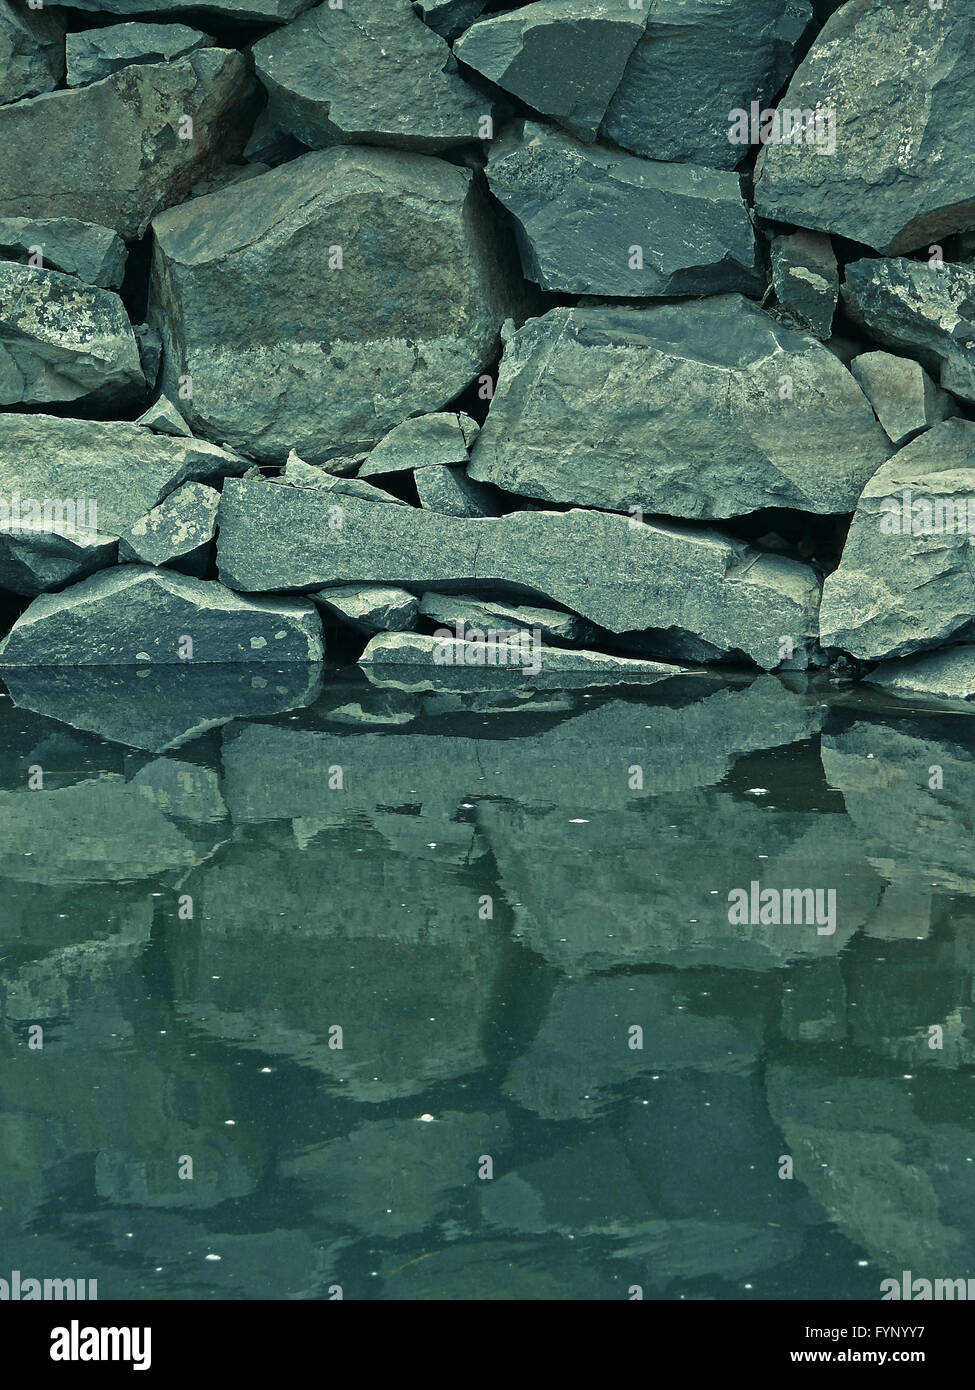 Reflection of stones in calm water - Stock Image